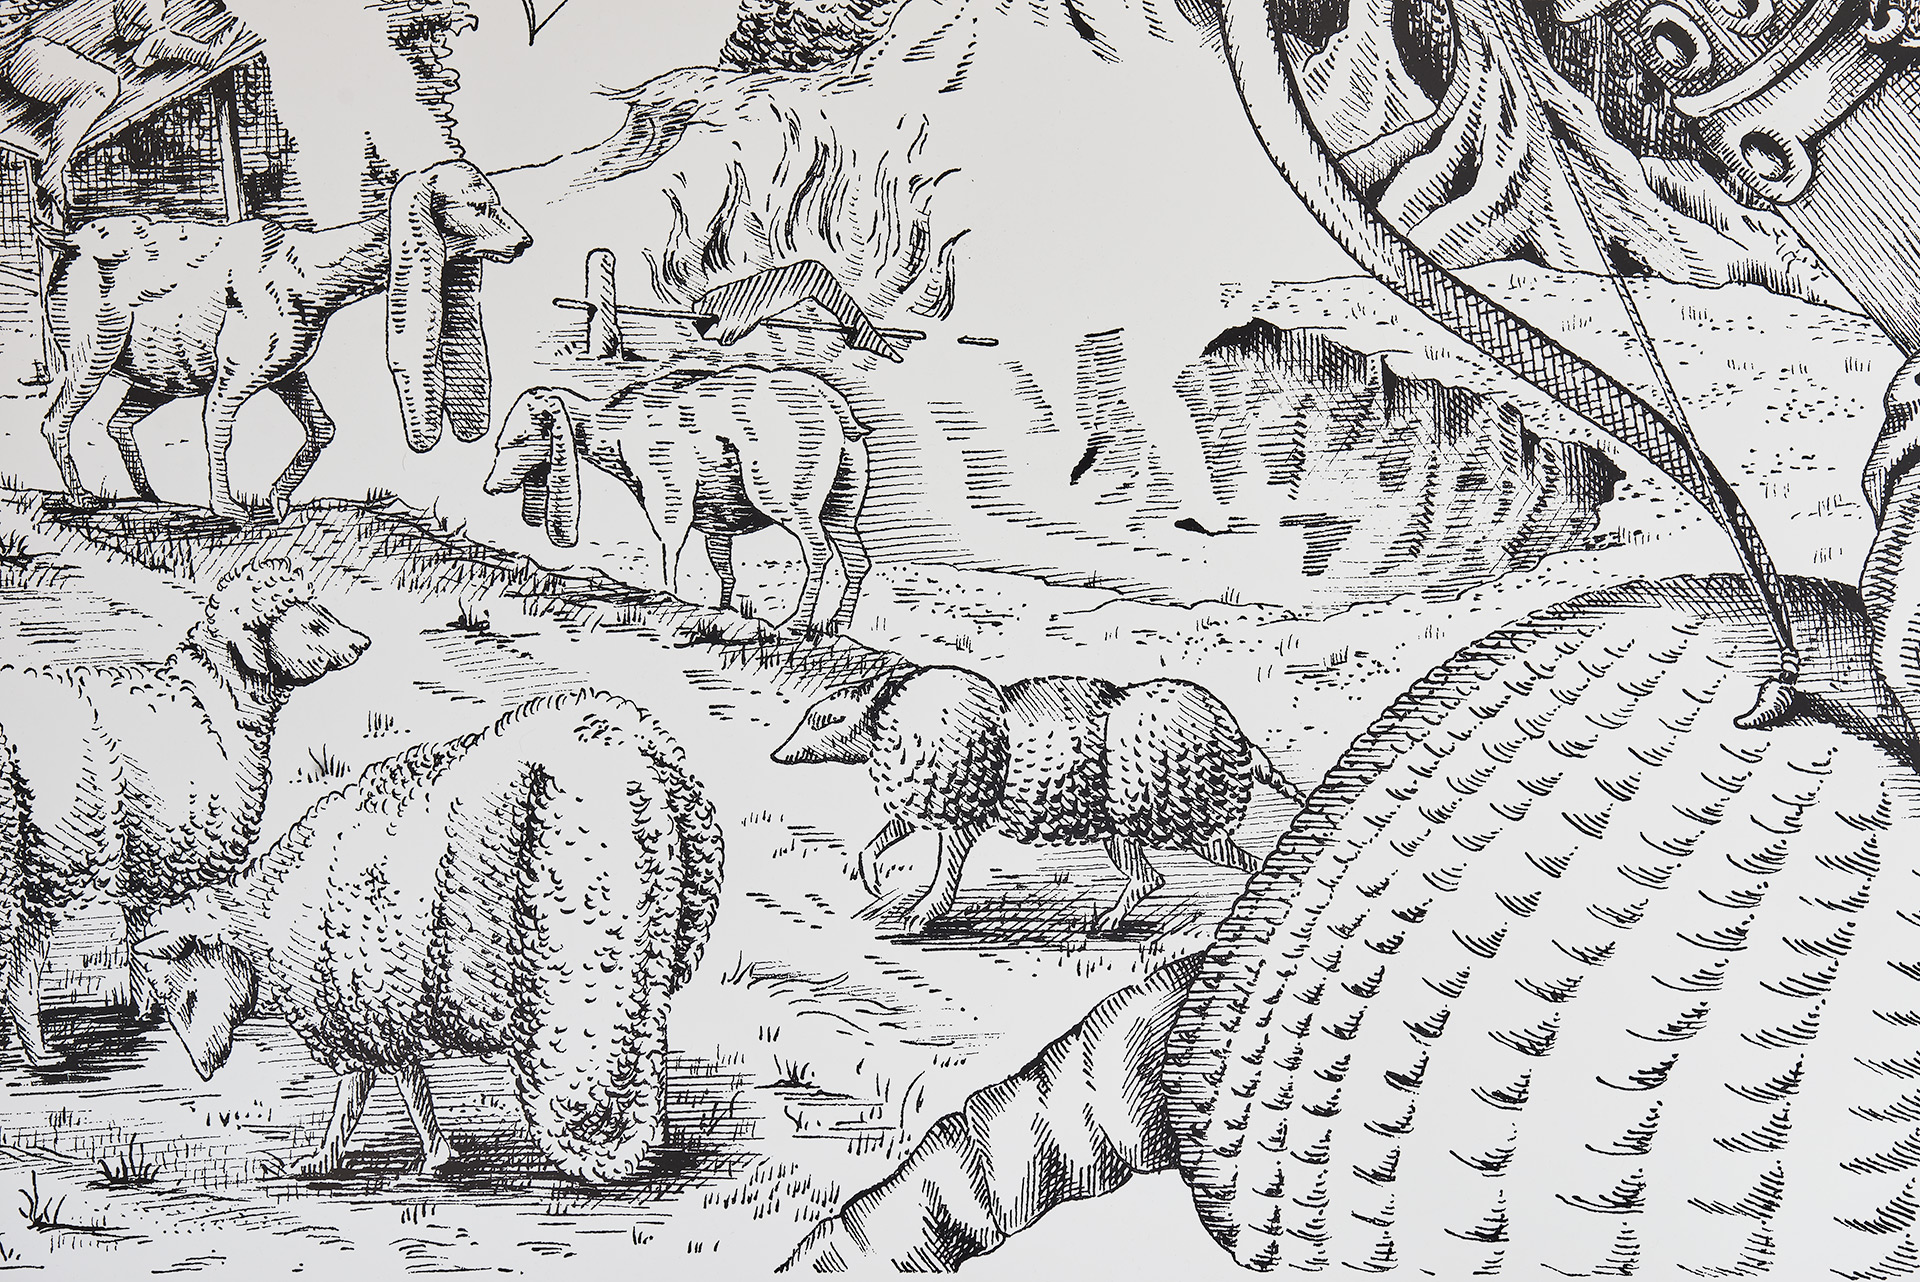 A close up of a drawing in the style of an engraving. The landscape can be seen but figures have been omitted.